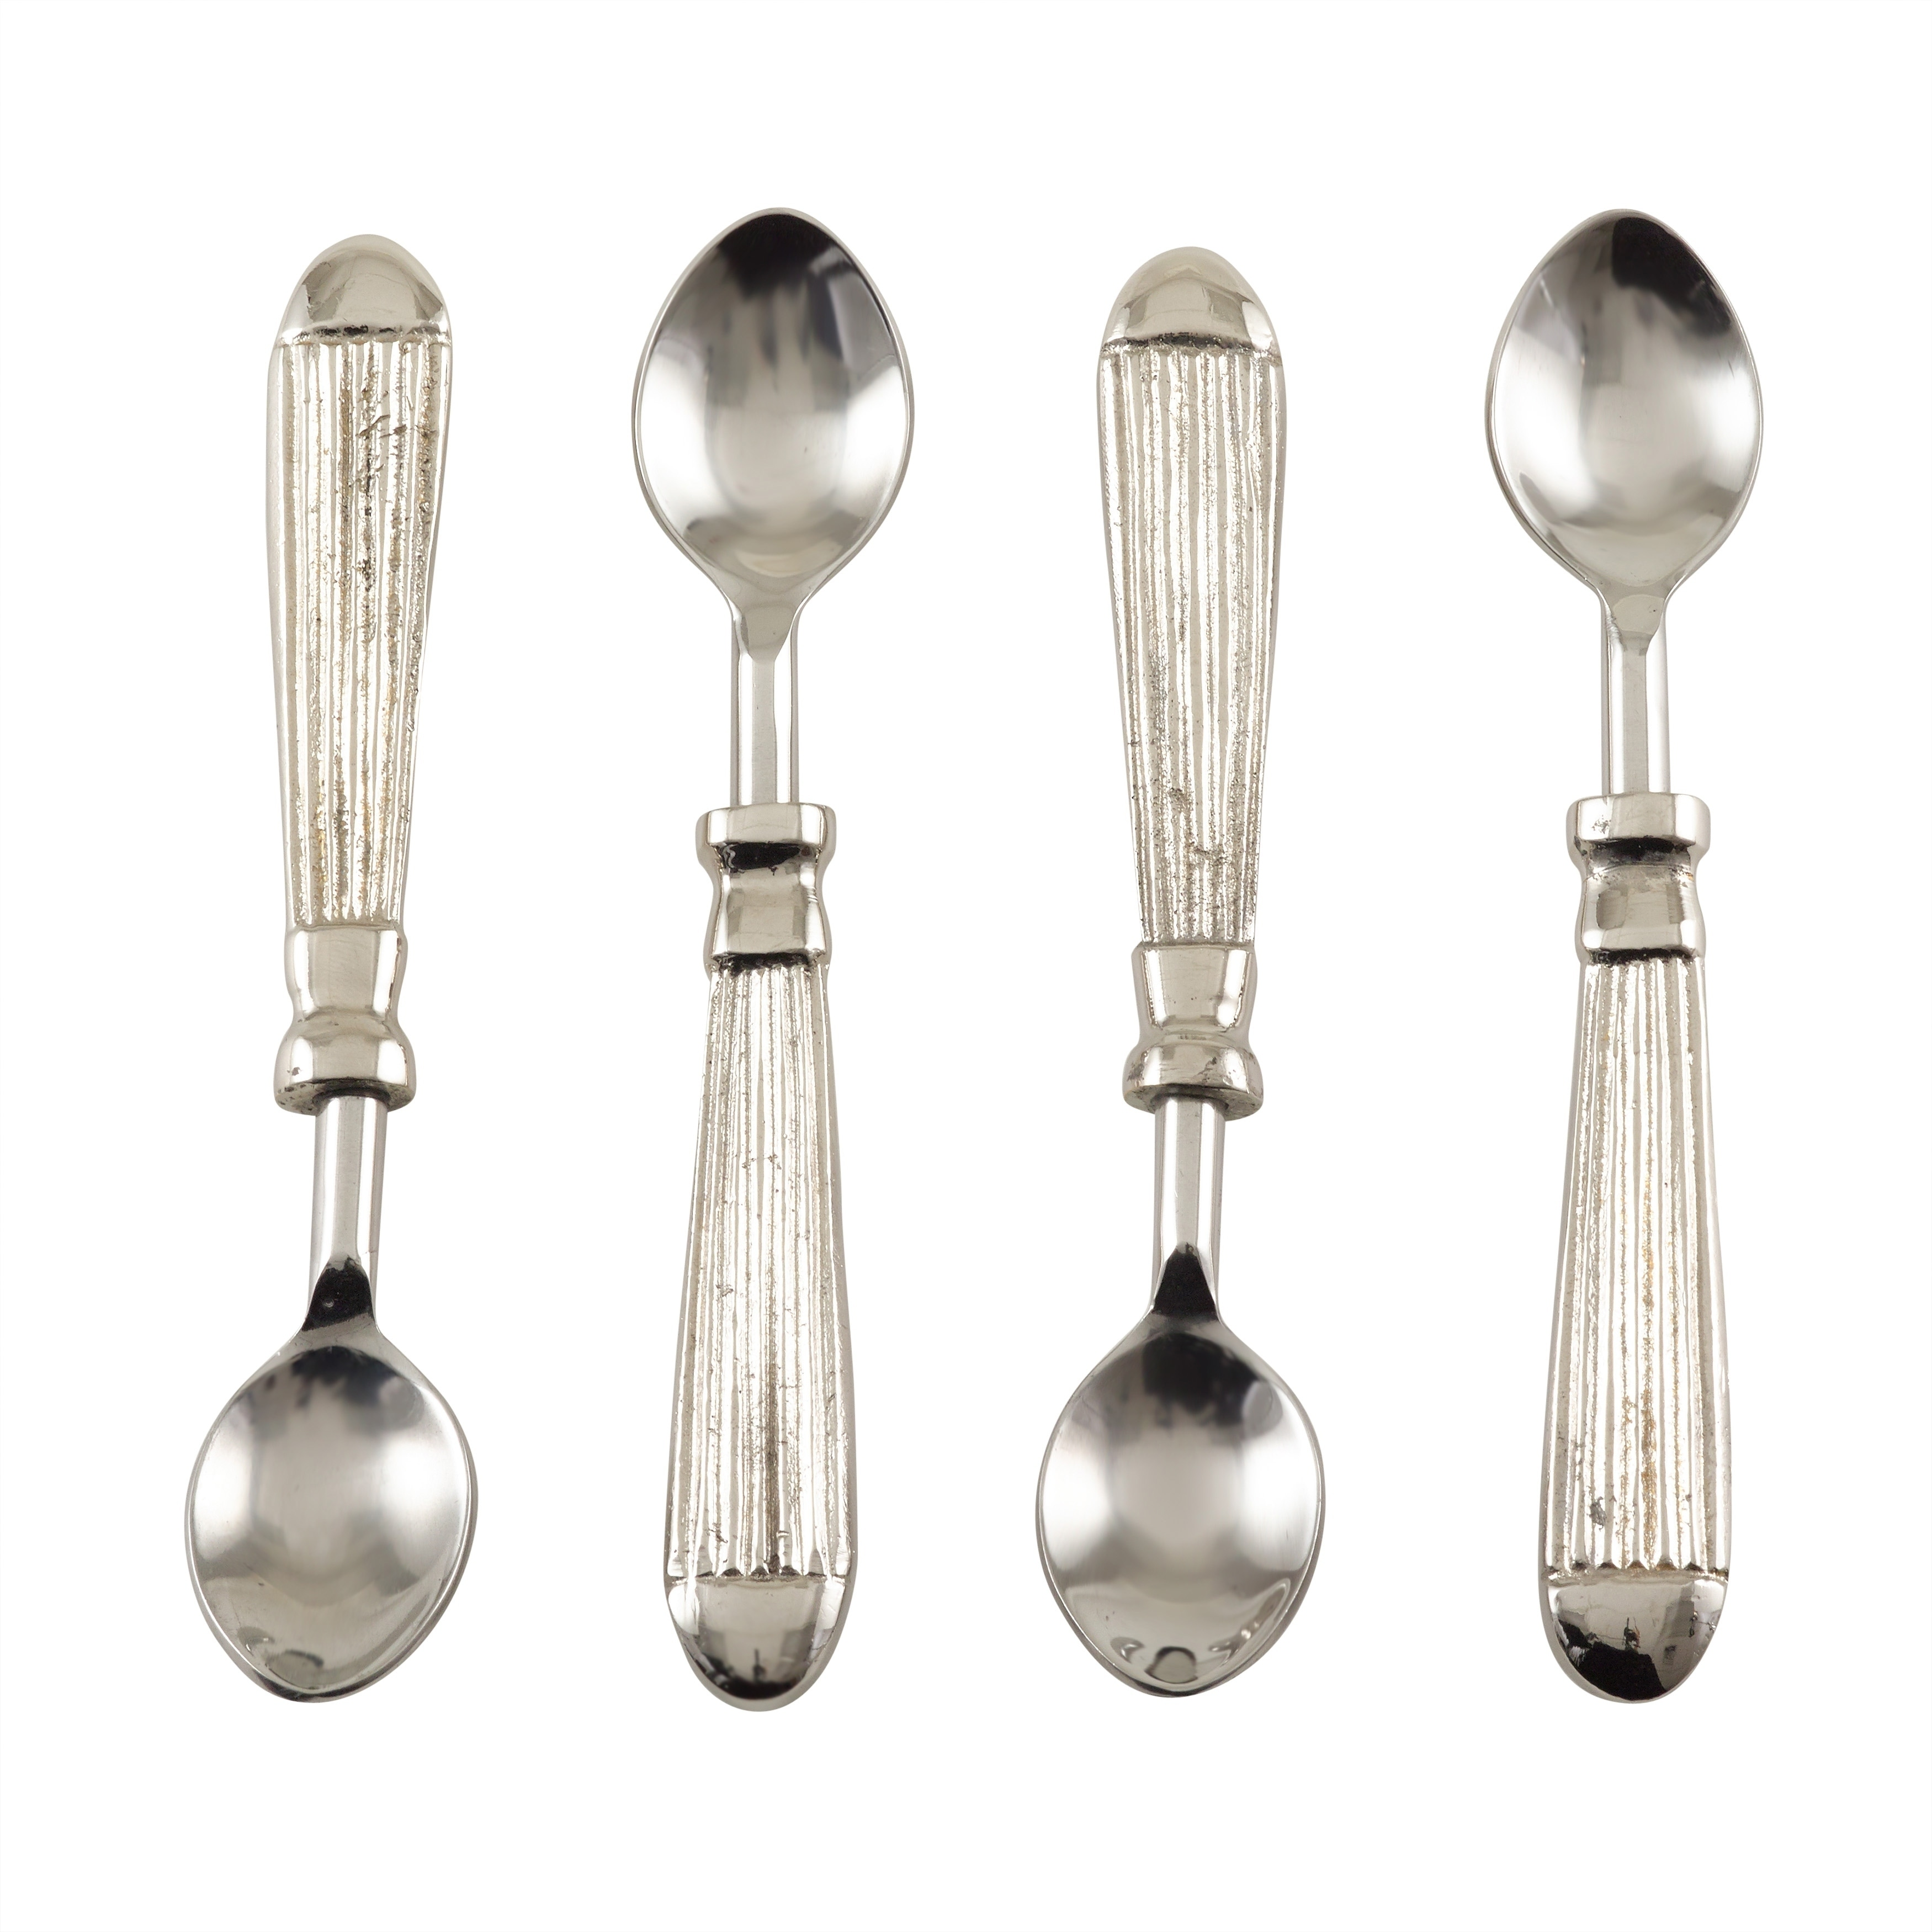 Saro Ribbed Design Texture Stainless Steel Cocktail Spoon - Set of 4 - Silver